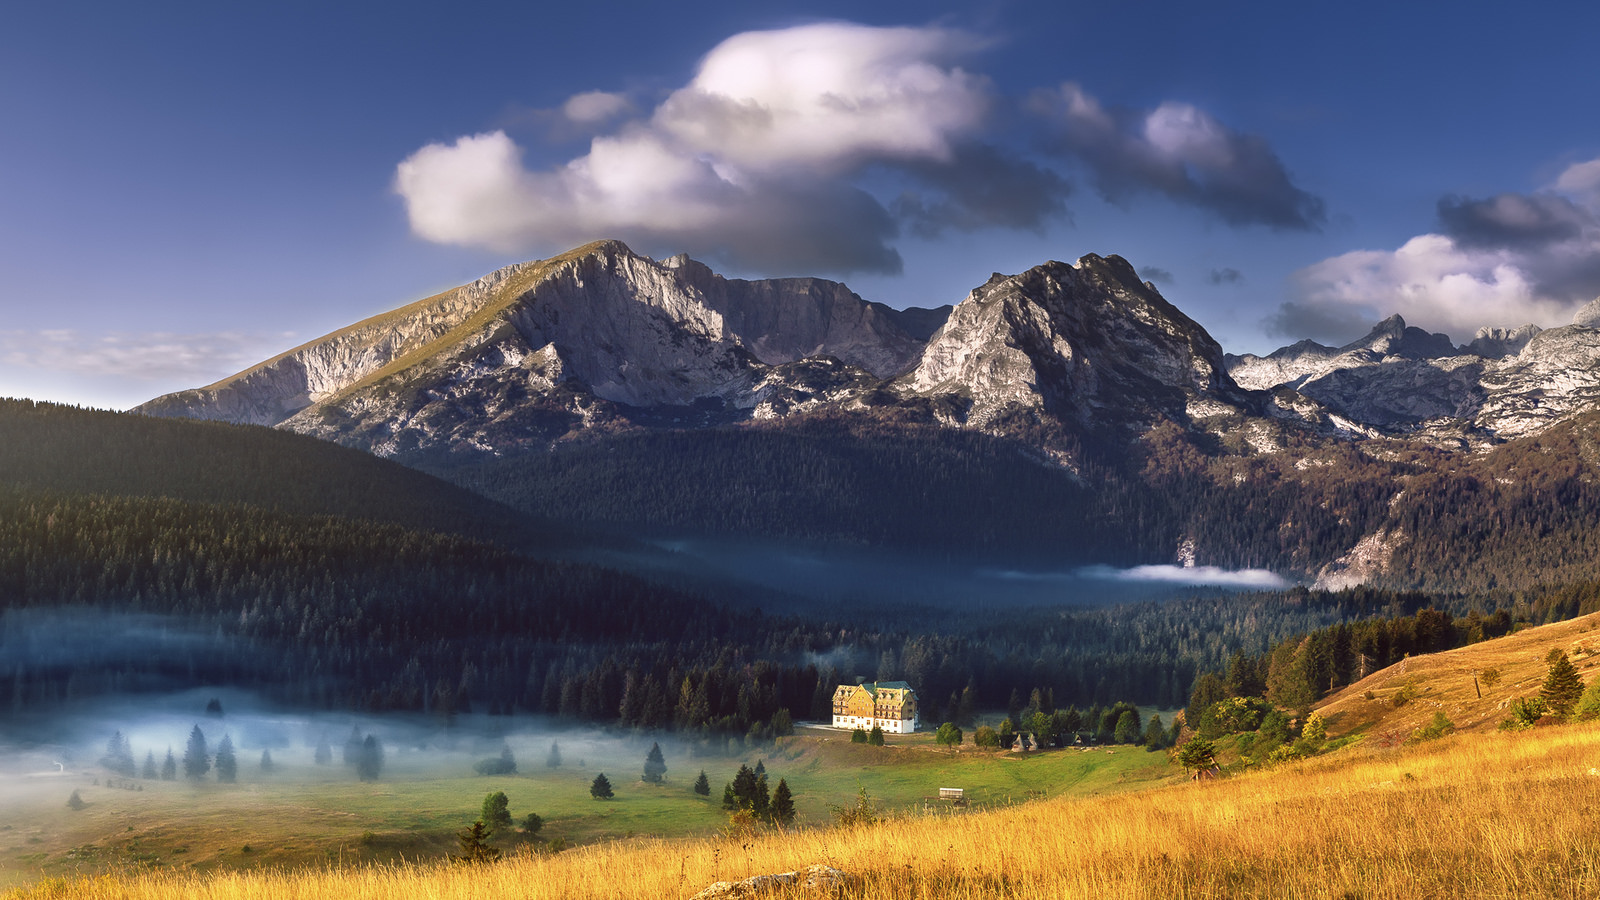 Durmitor National Park | © Ky0n Cheng/Flickr